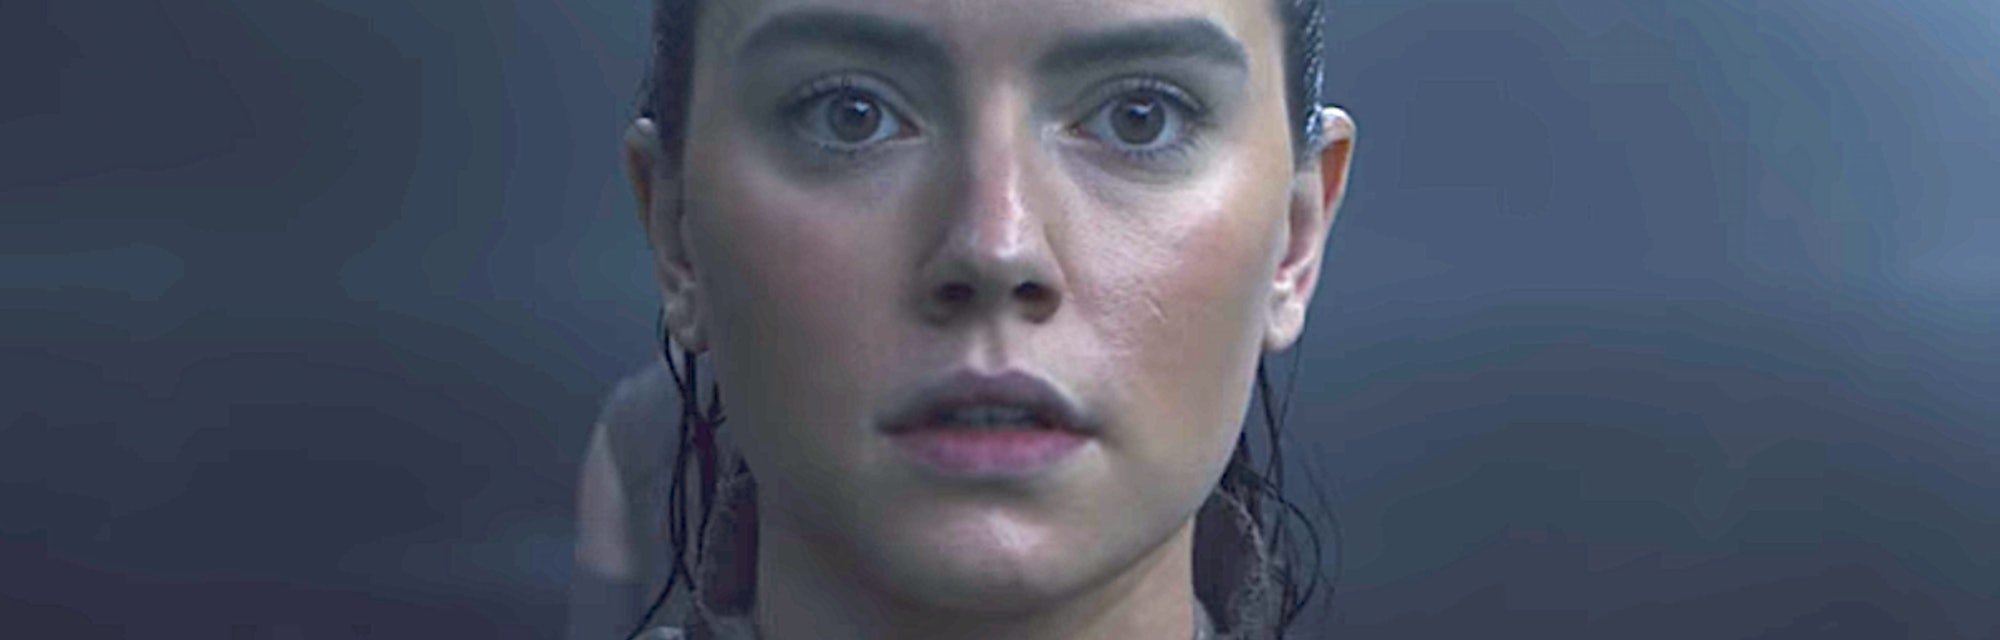 Star Wars The Rise Of Skywalker Theory Posits Dark Twist In Rey S Future